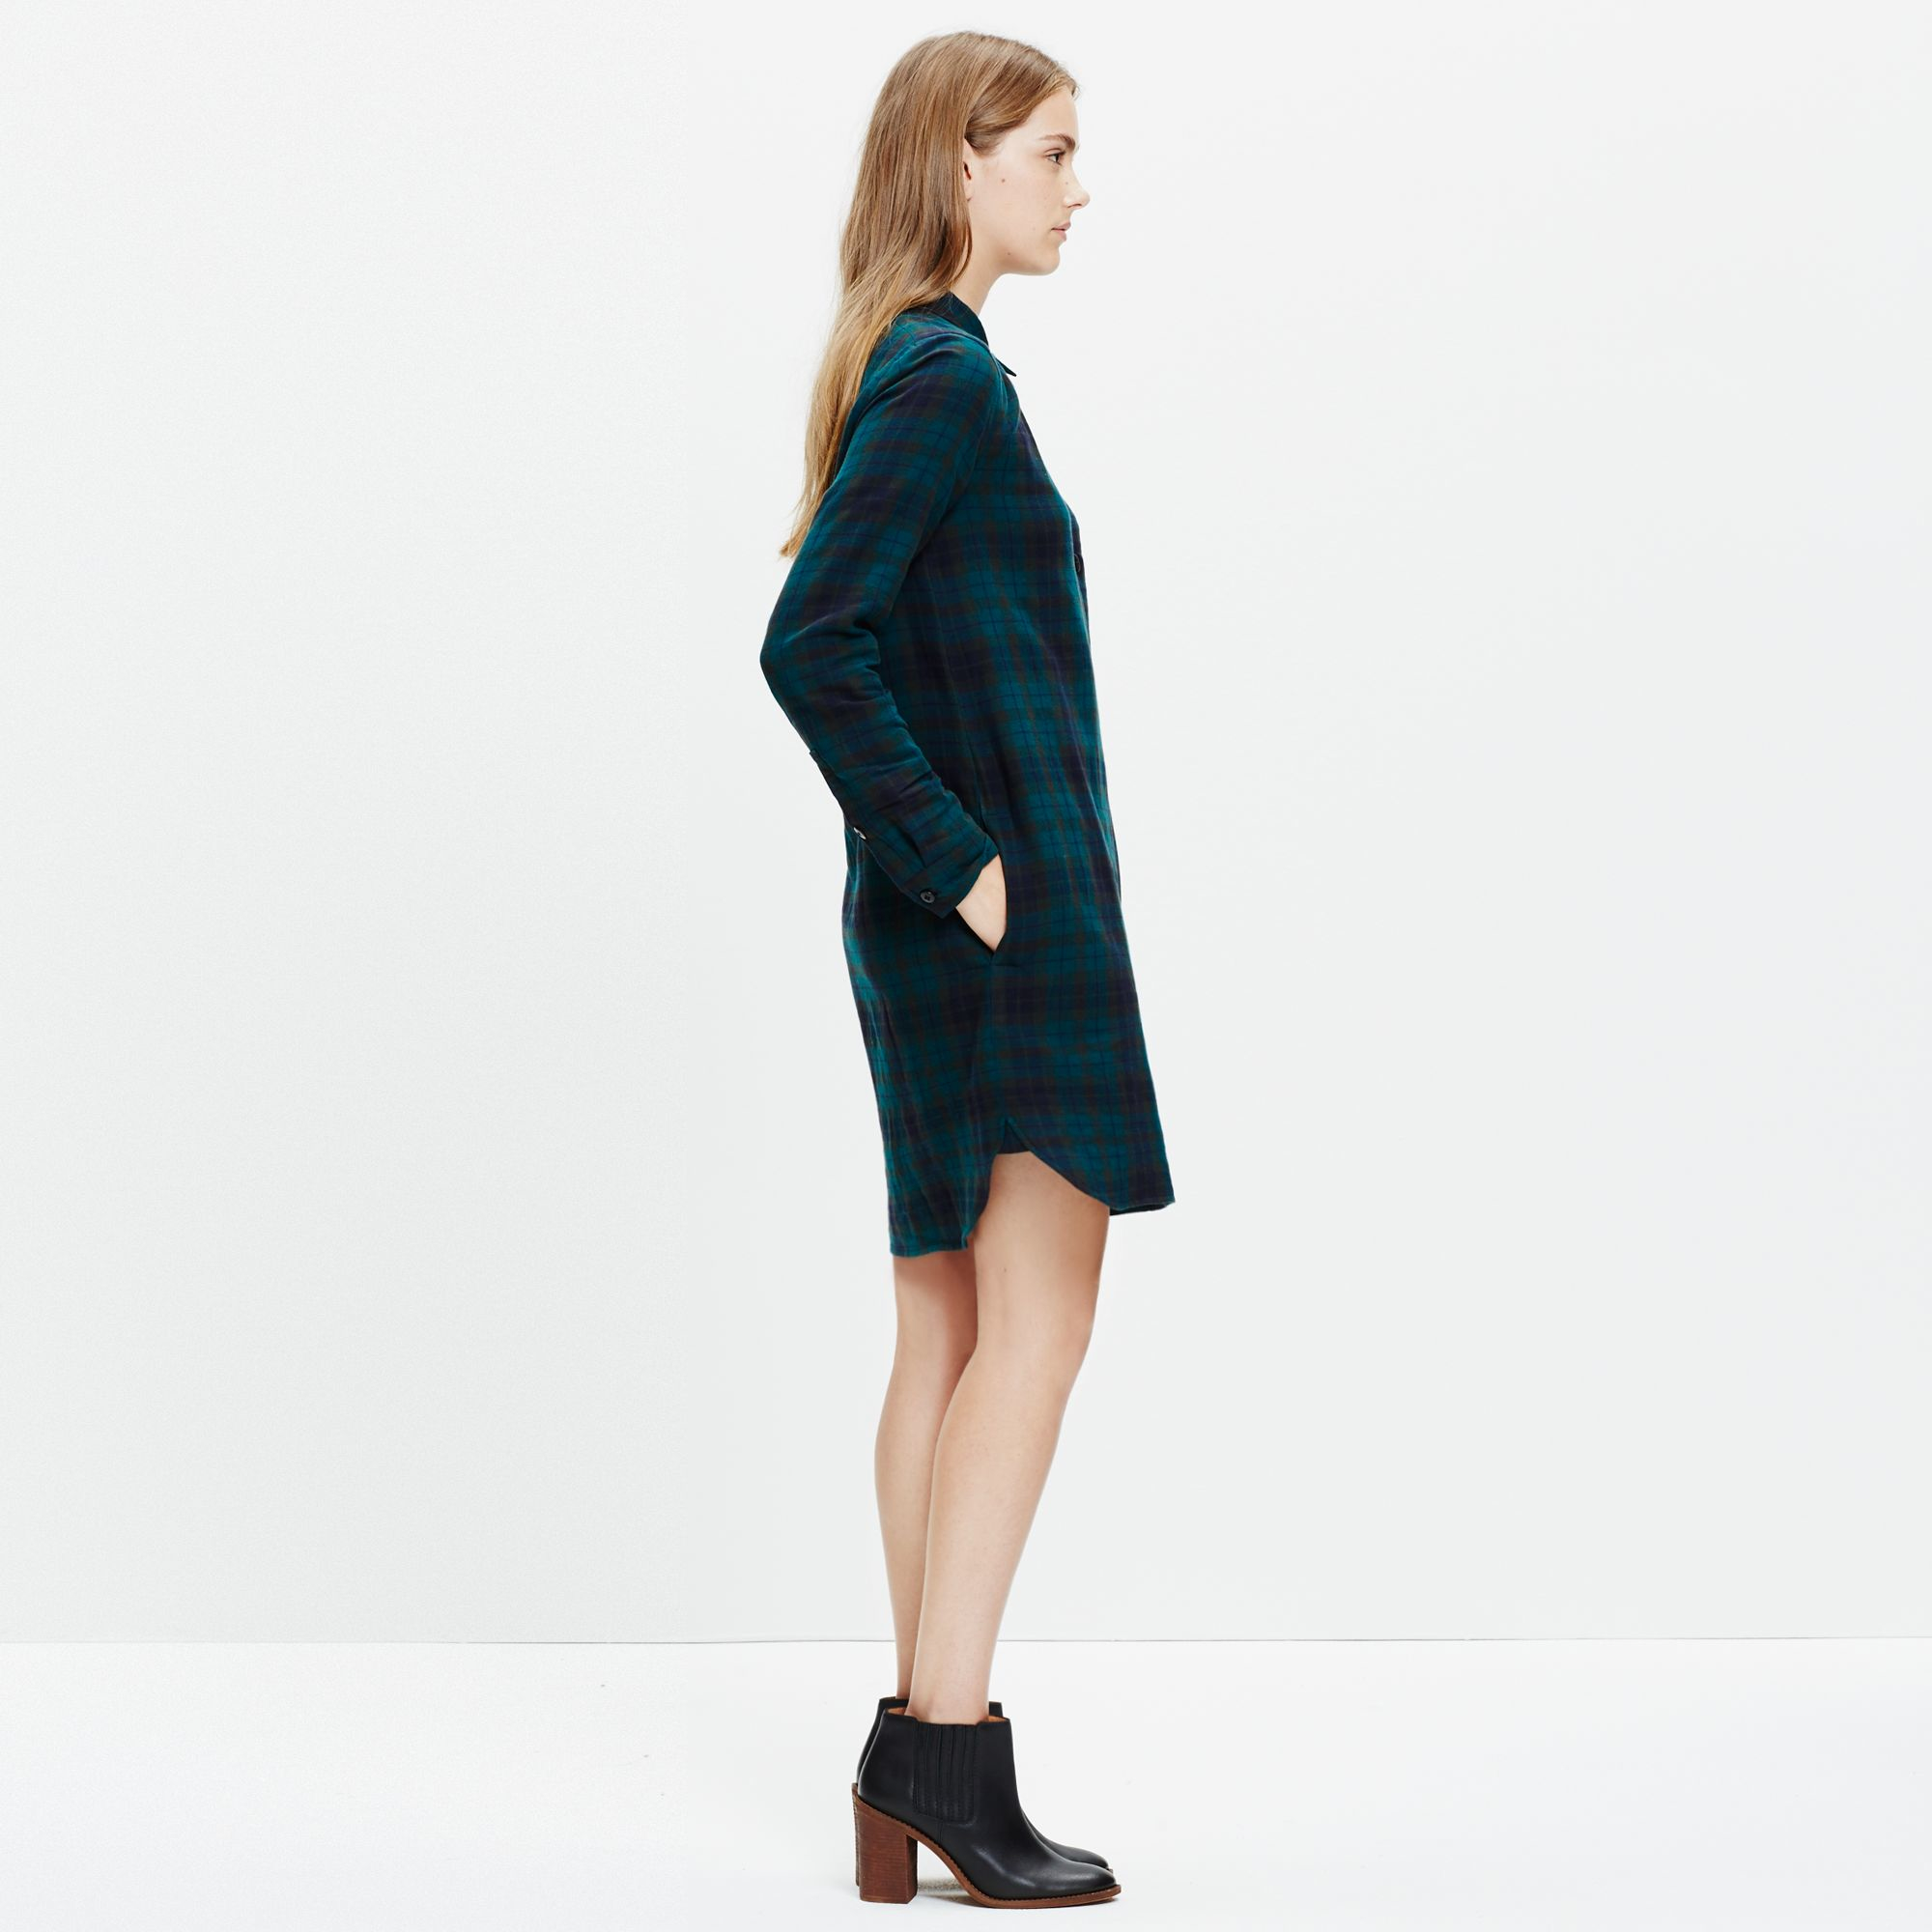 8feb6e3ccd5 Madewell Latitude Shirtdress In Alma Plaid in Green - Lyst